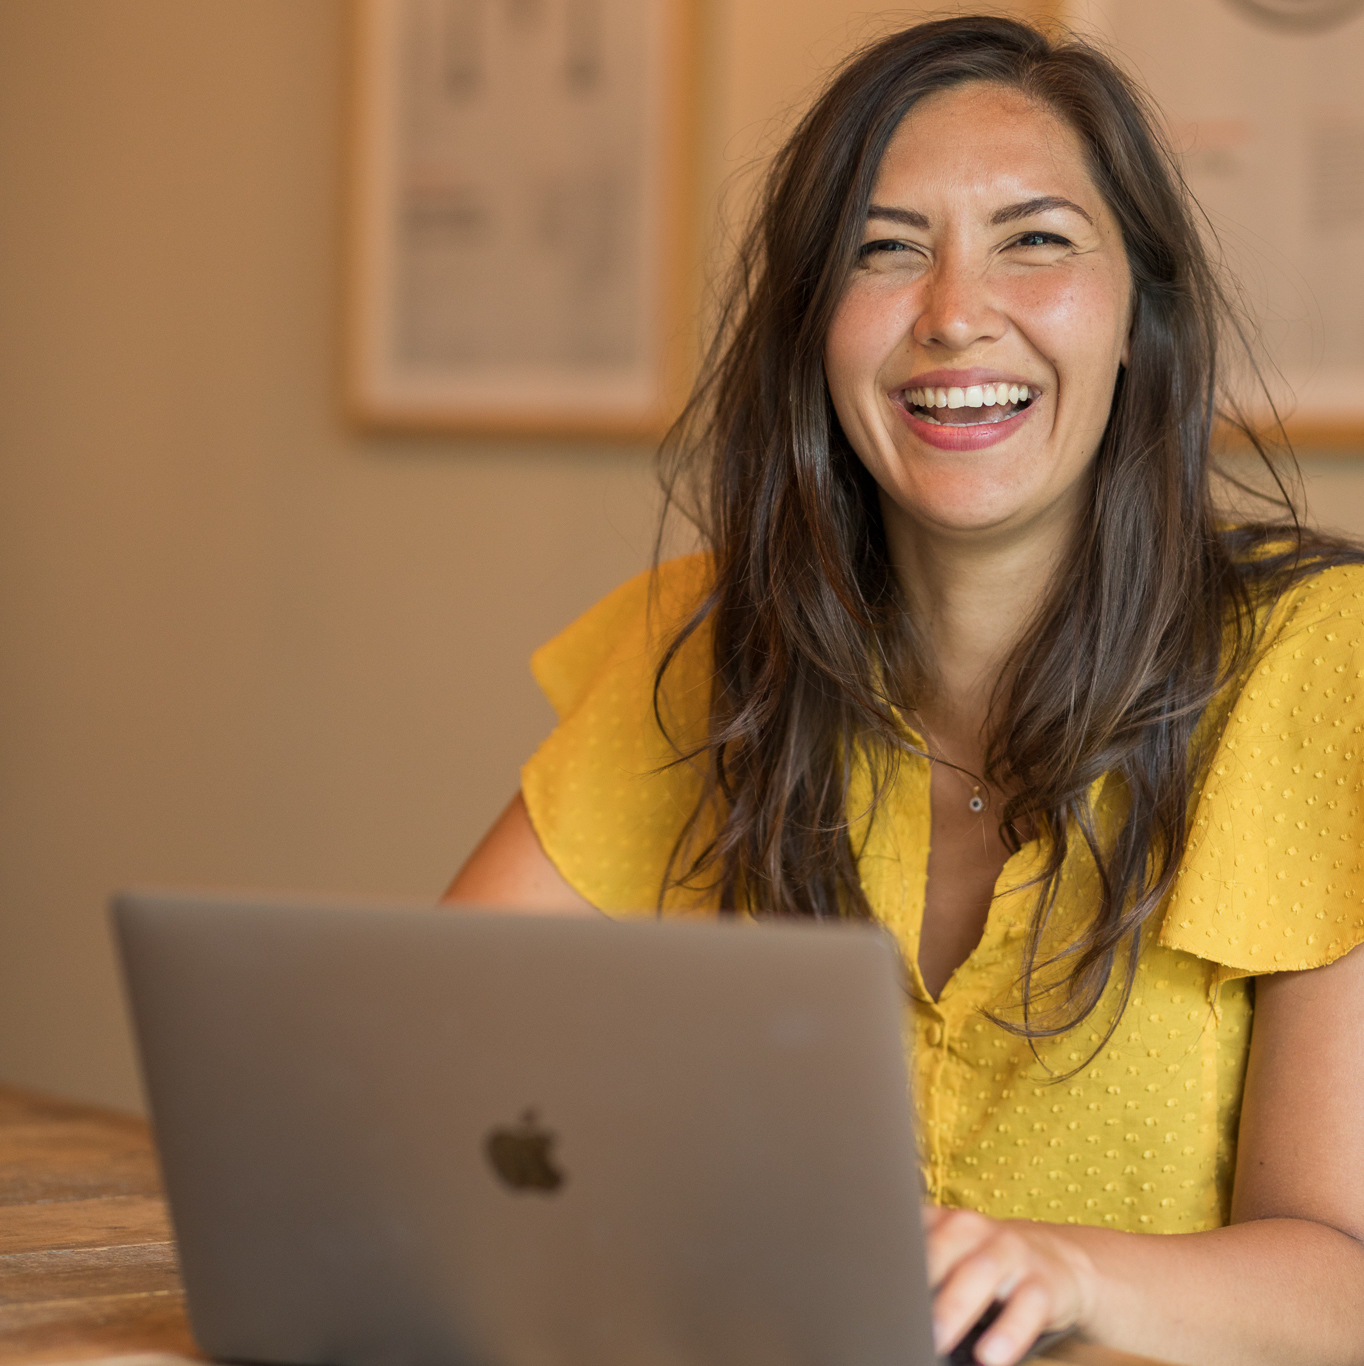 Smiling woman in front of laptop looking into the camera